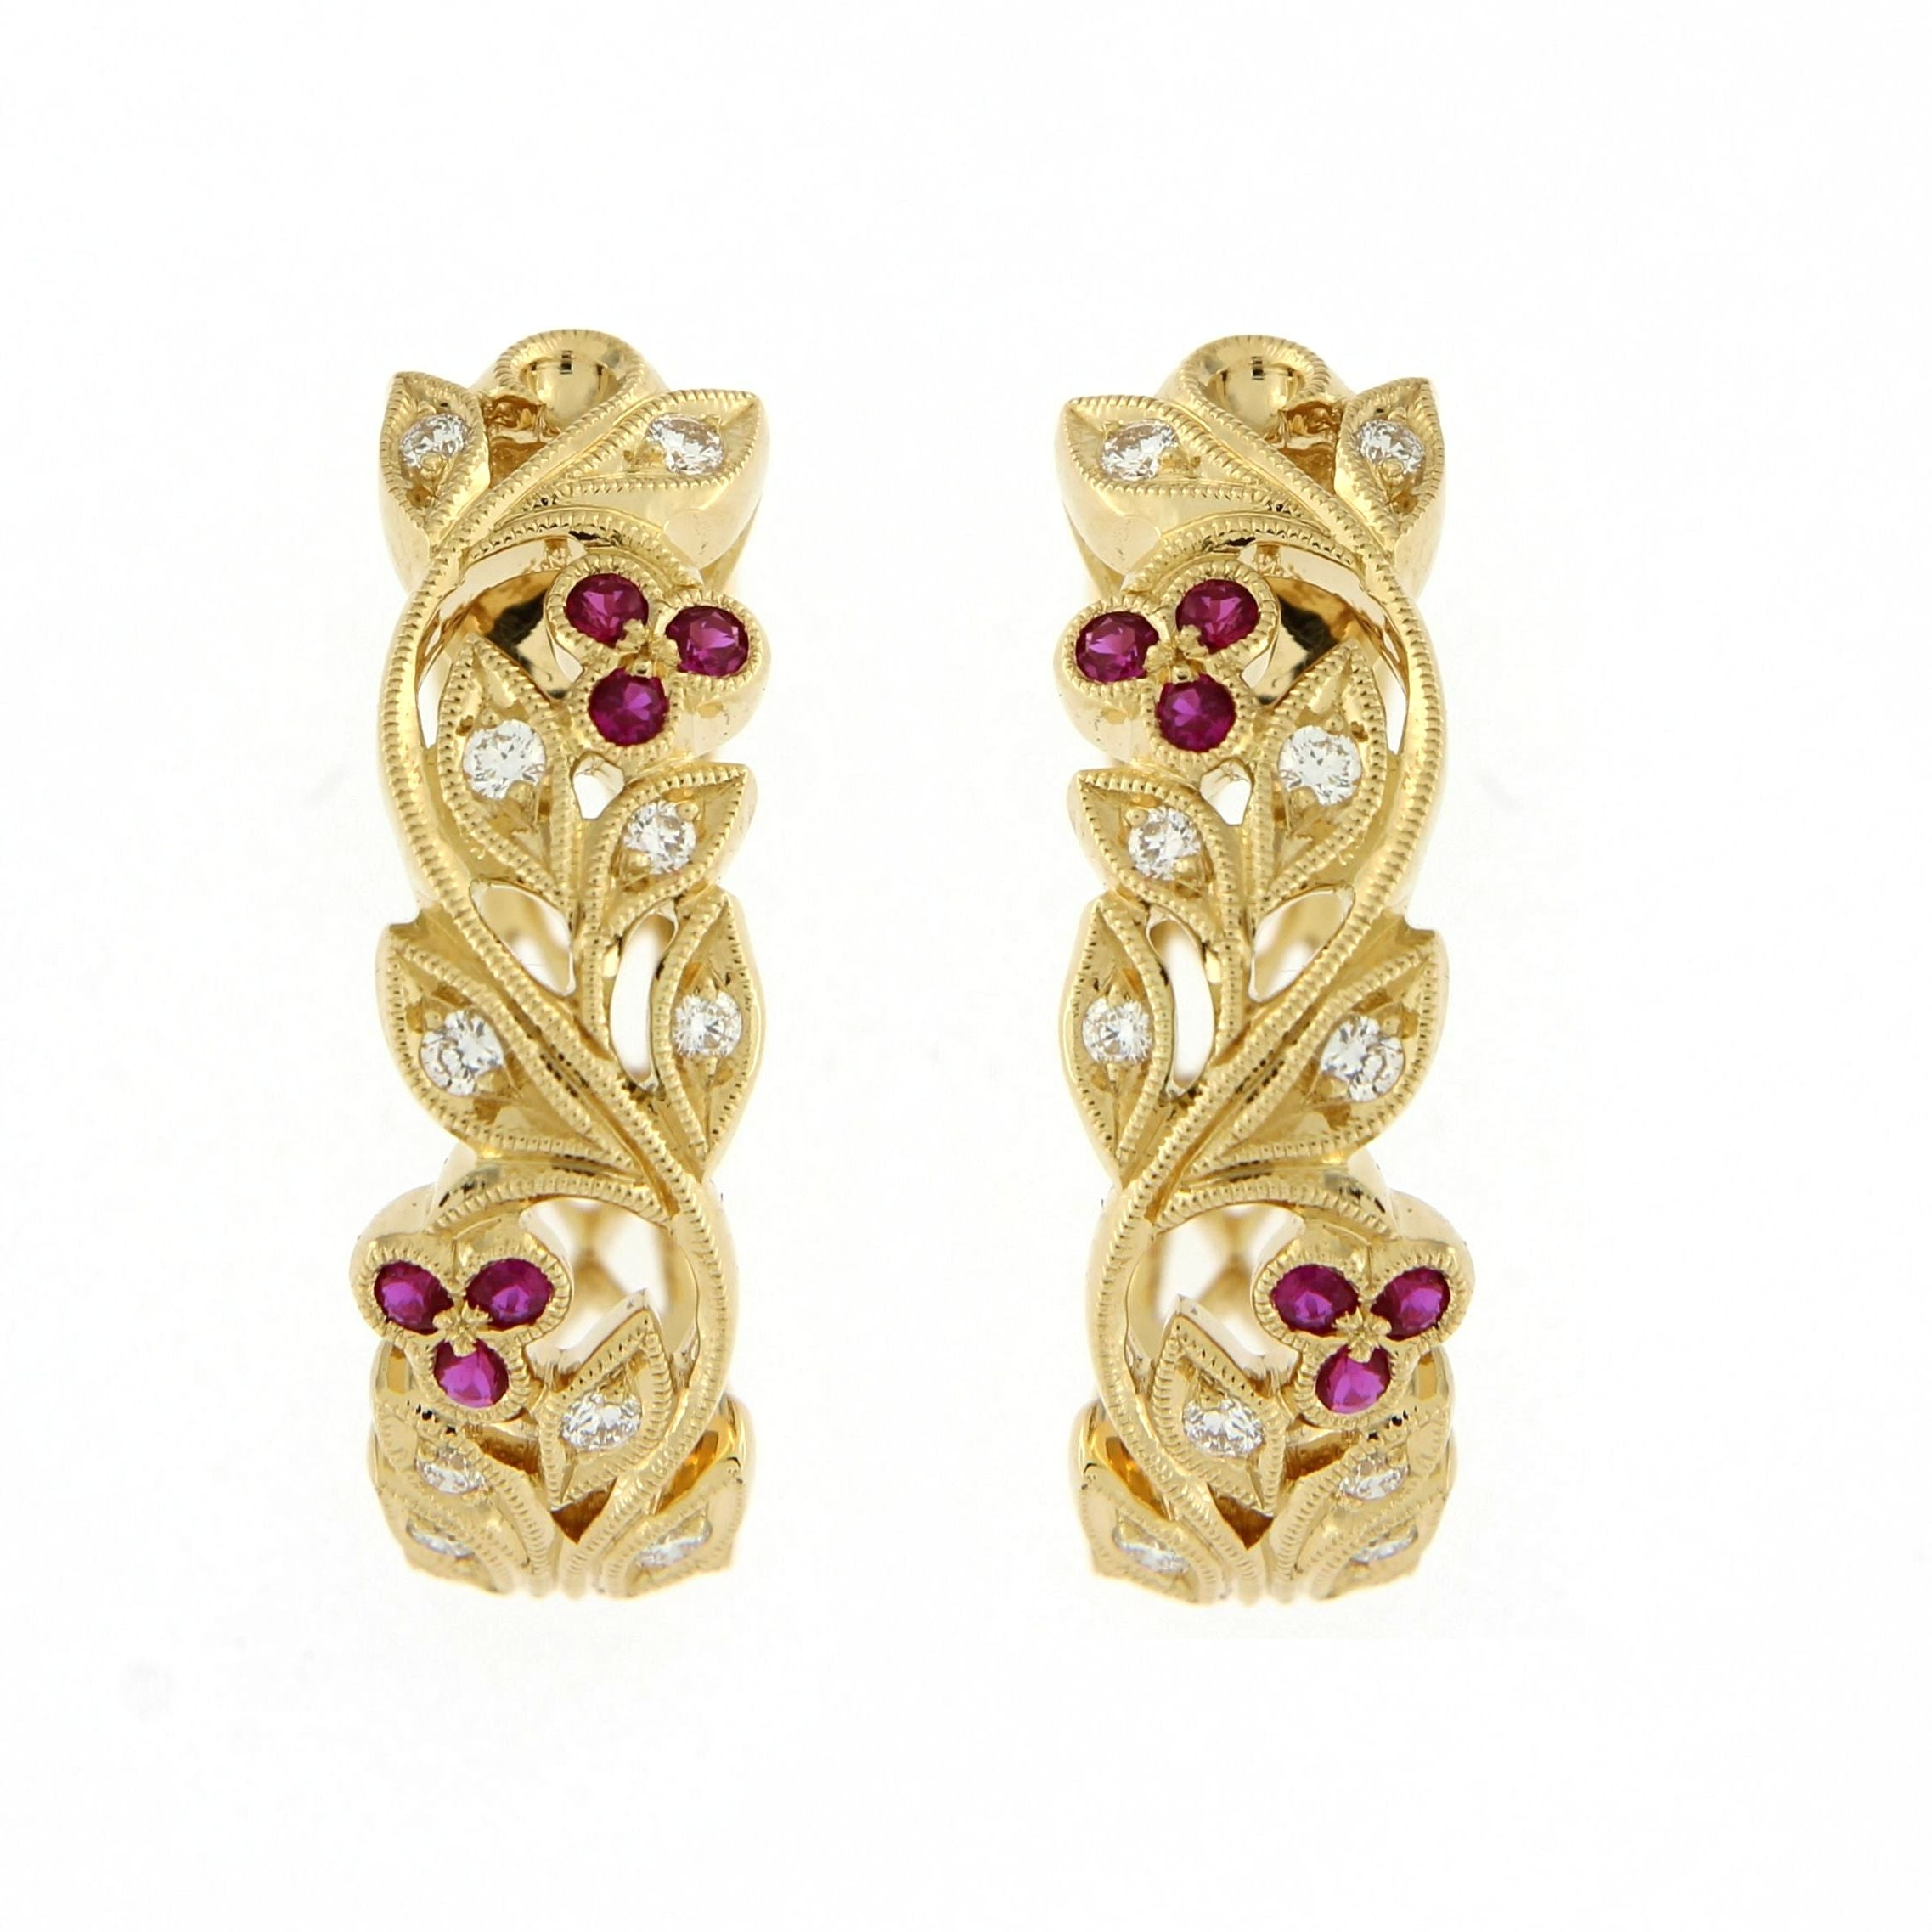 Gold and Ruby Hoop earrings